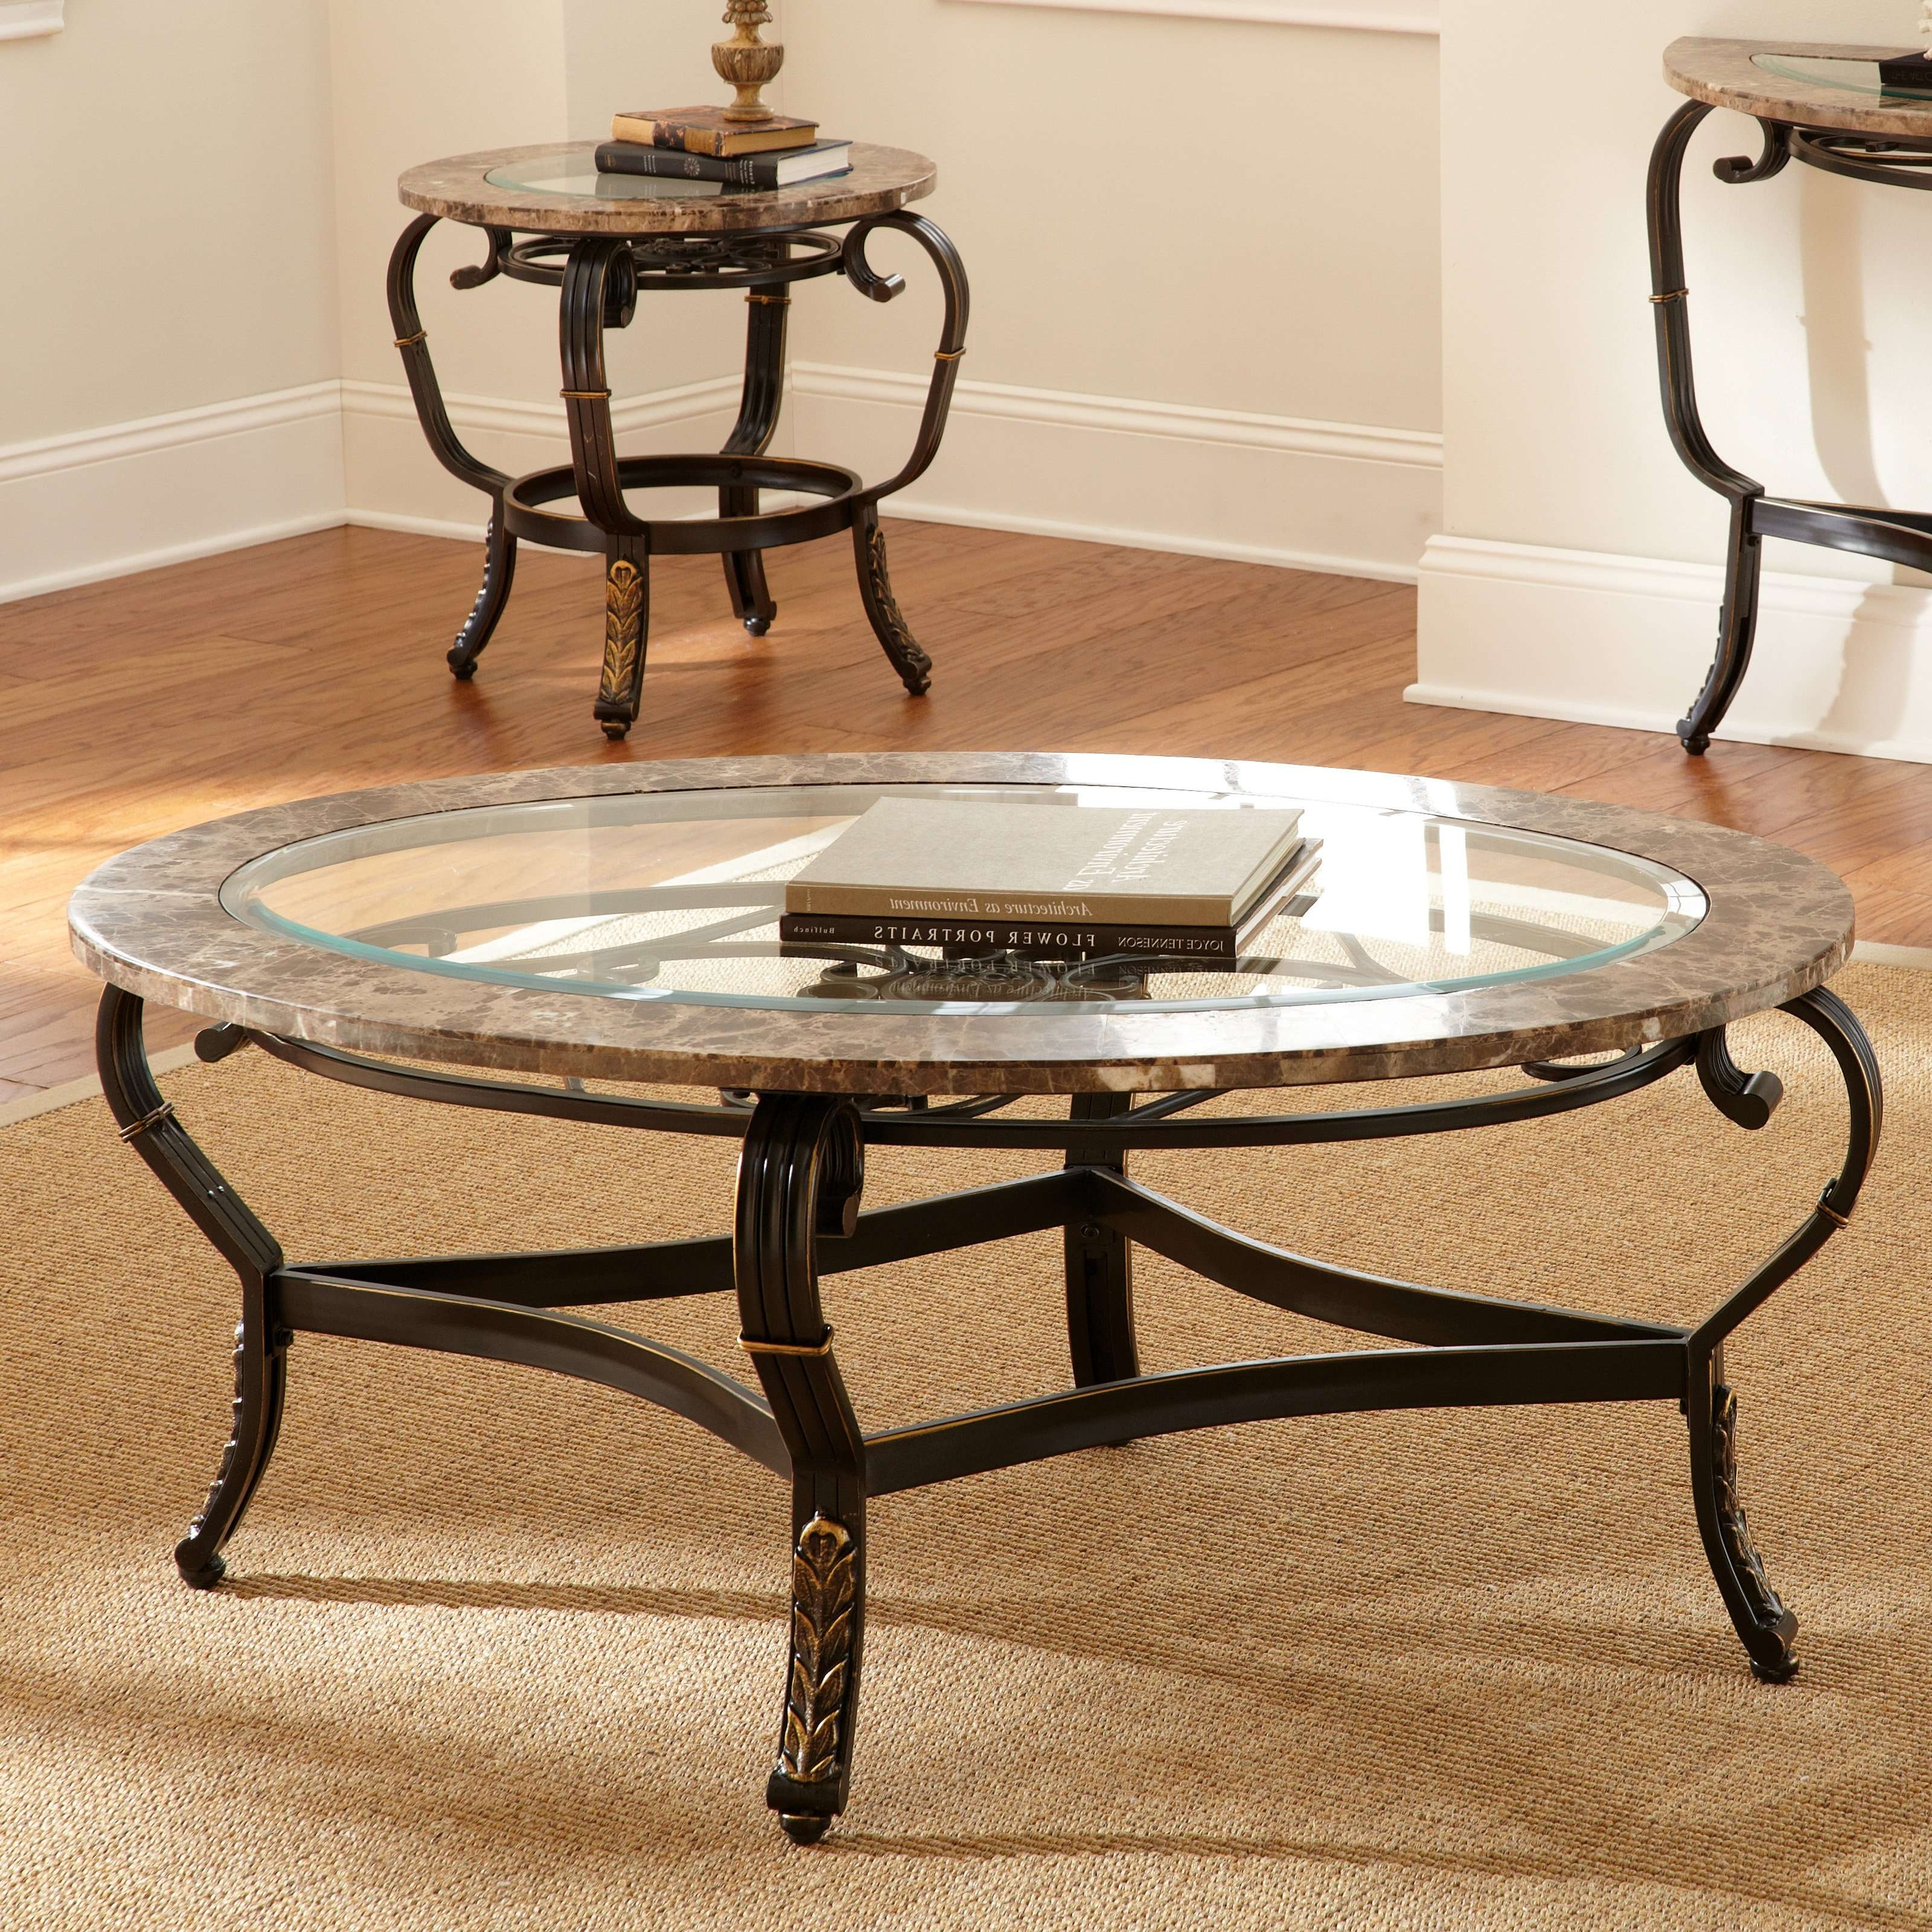 Recent Retro Glass Top Coffee Tables For Coffee Tables : Wrought Iron Coffee Table Legs Bases Cast Frame (View 11 of 20)